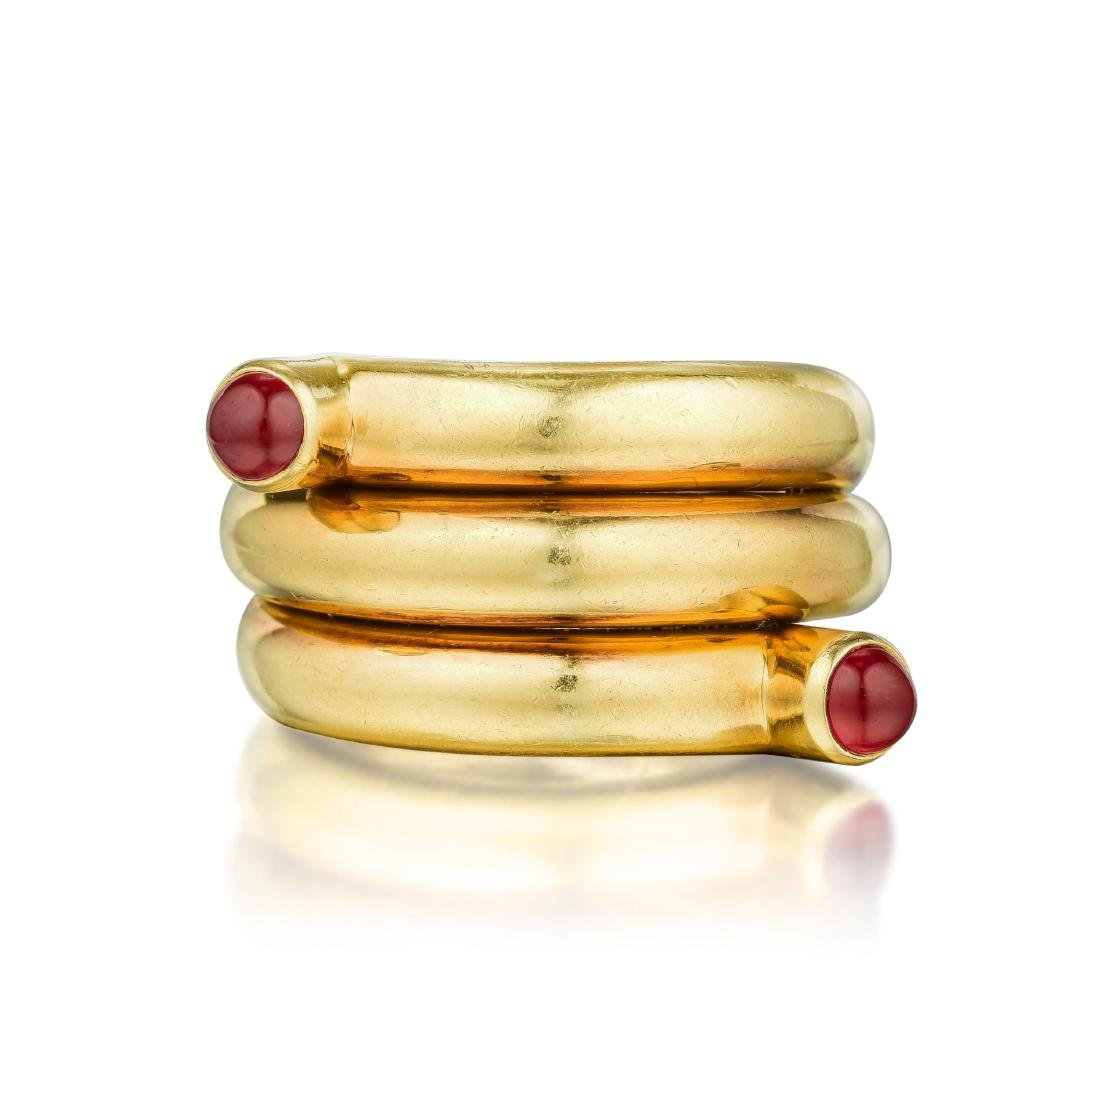 Tiffany & Co. Schlumberger Ruby Double Coil Ring